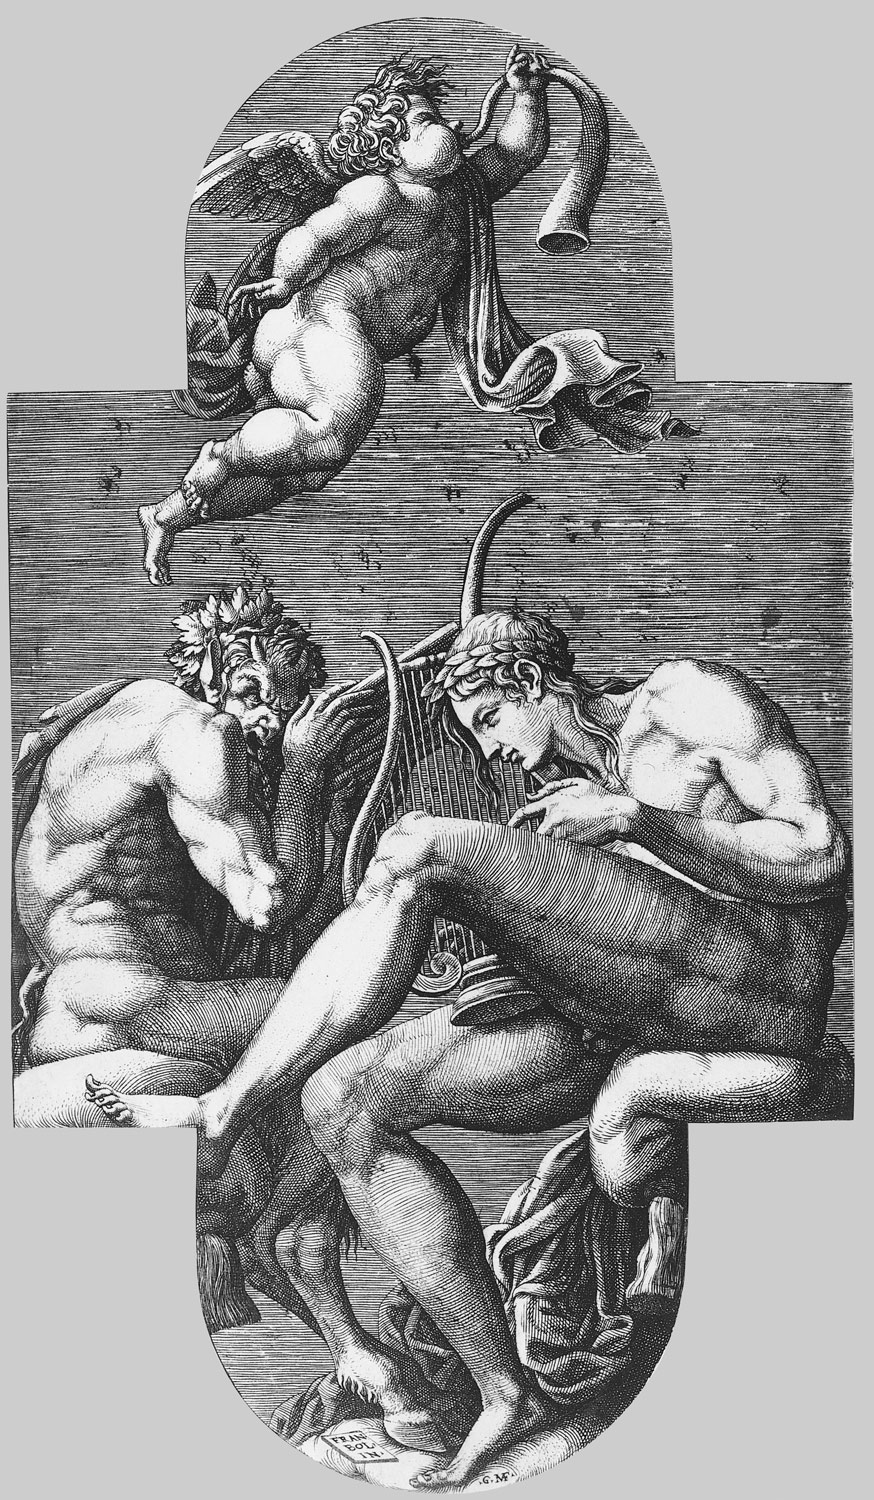 Apollo, Pan, and a putto blowing a horn, from a series of eight compositions after Francesco Primaticcios designs for the ceiling of the Ulysses Gallery (destroyed 1738-39) at Fontainebleau